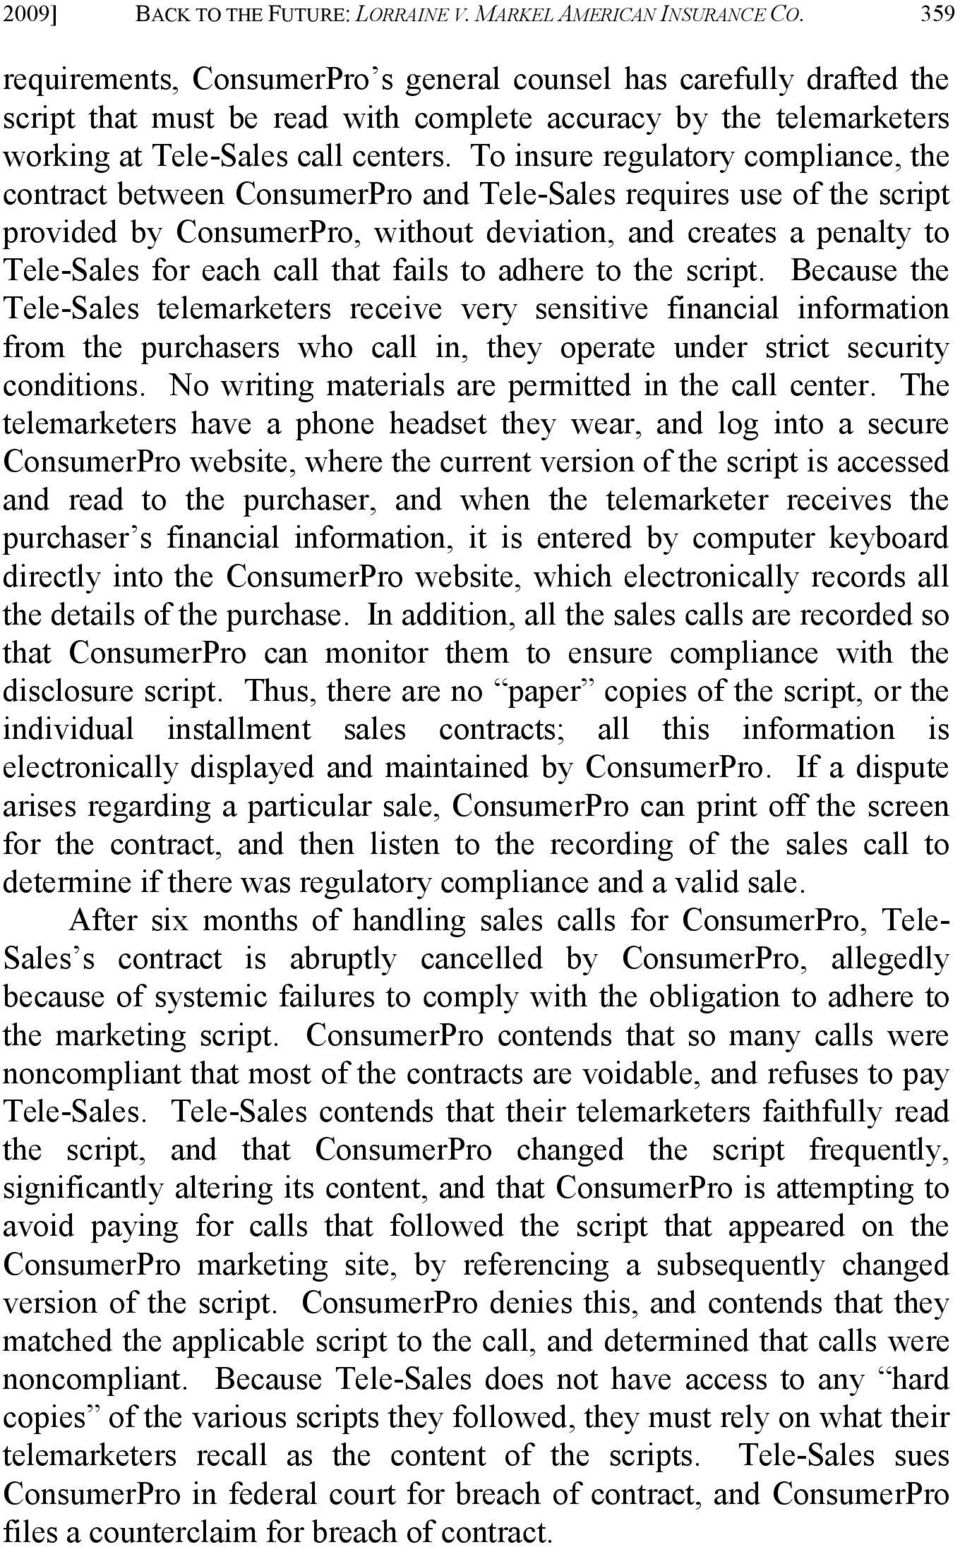 To insure regulatory compliance, the contract between ConsumerPro and Tele-Sales requires use of the script provided by ConsumerPro, without deviation, and creates a penalty to Tele-Sales for each